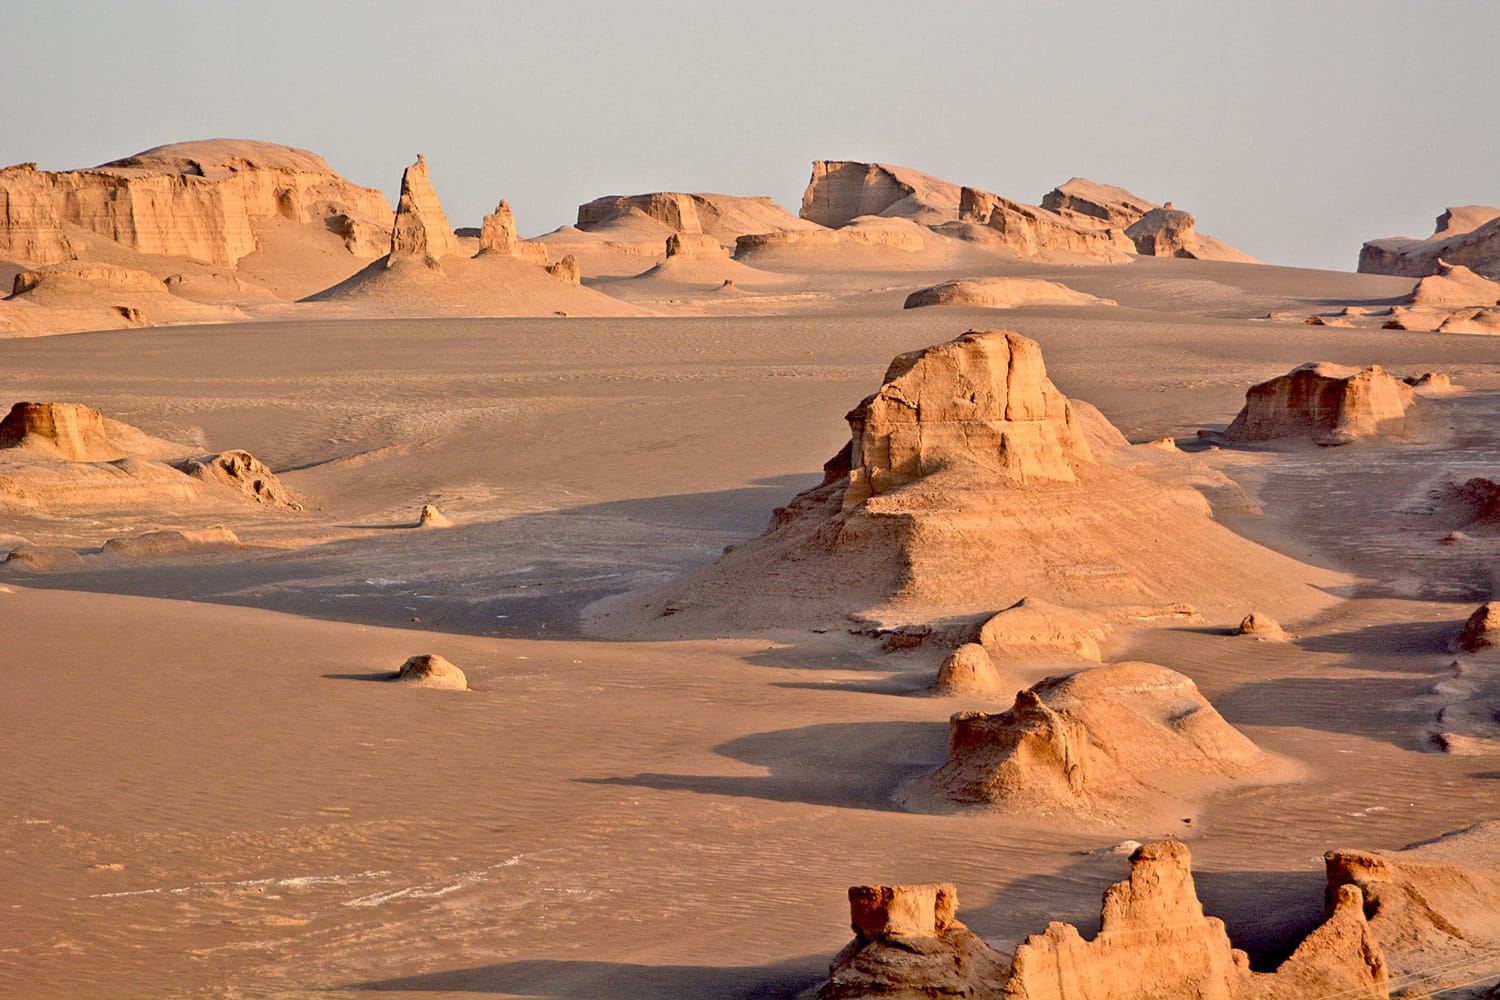 Dasht-e-Lut, Lut desert, hottest desert in the world, Iran